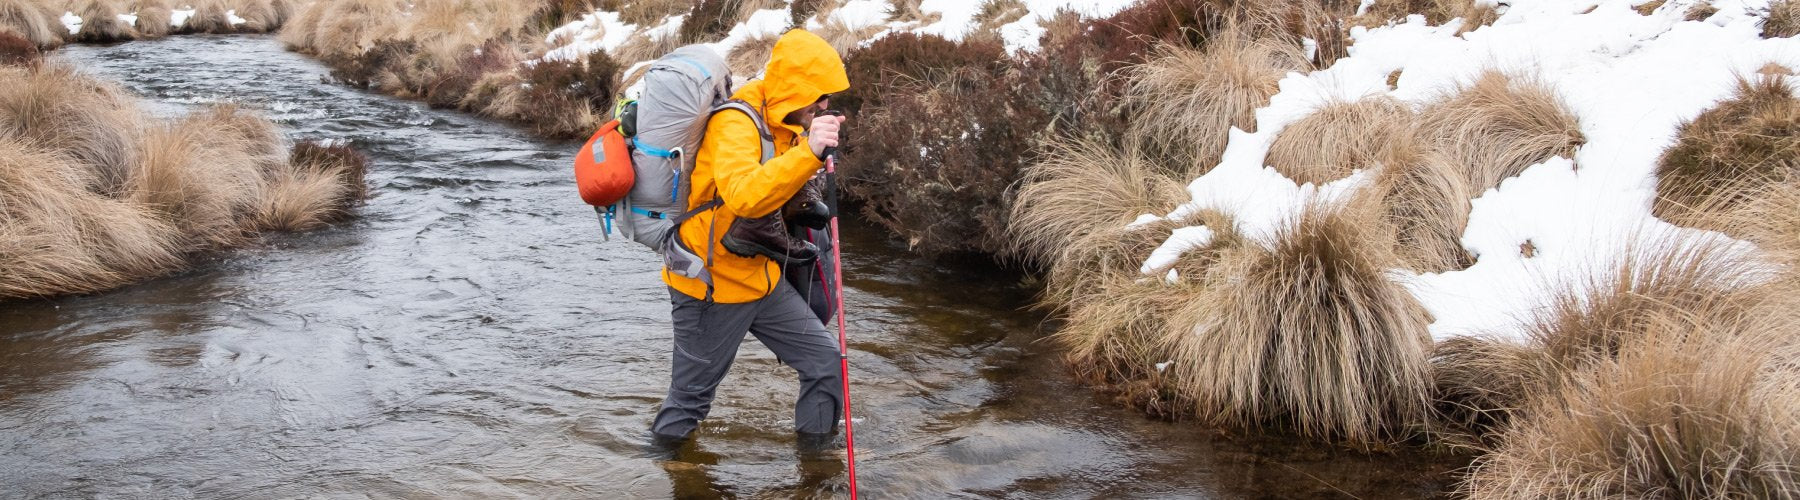 Kane braving a chilly crossing in kosciuszko NP.